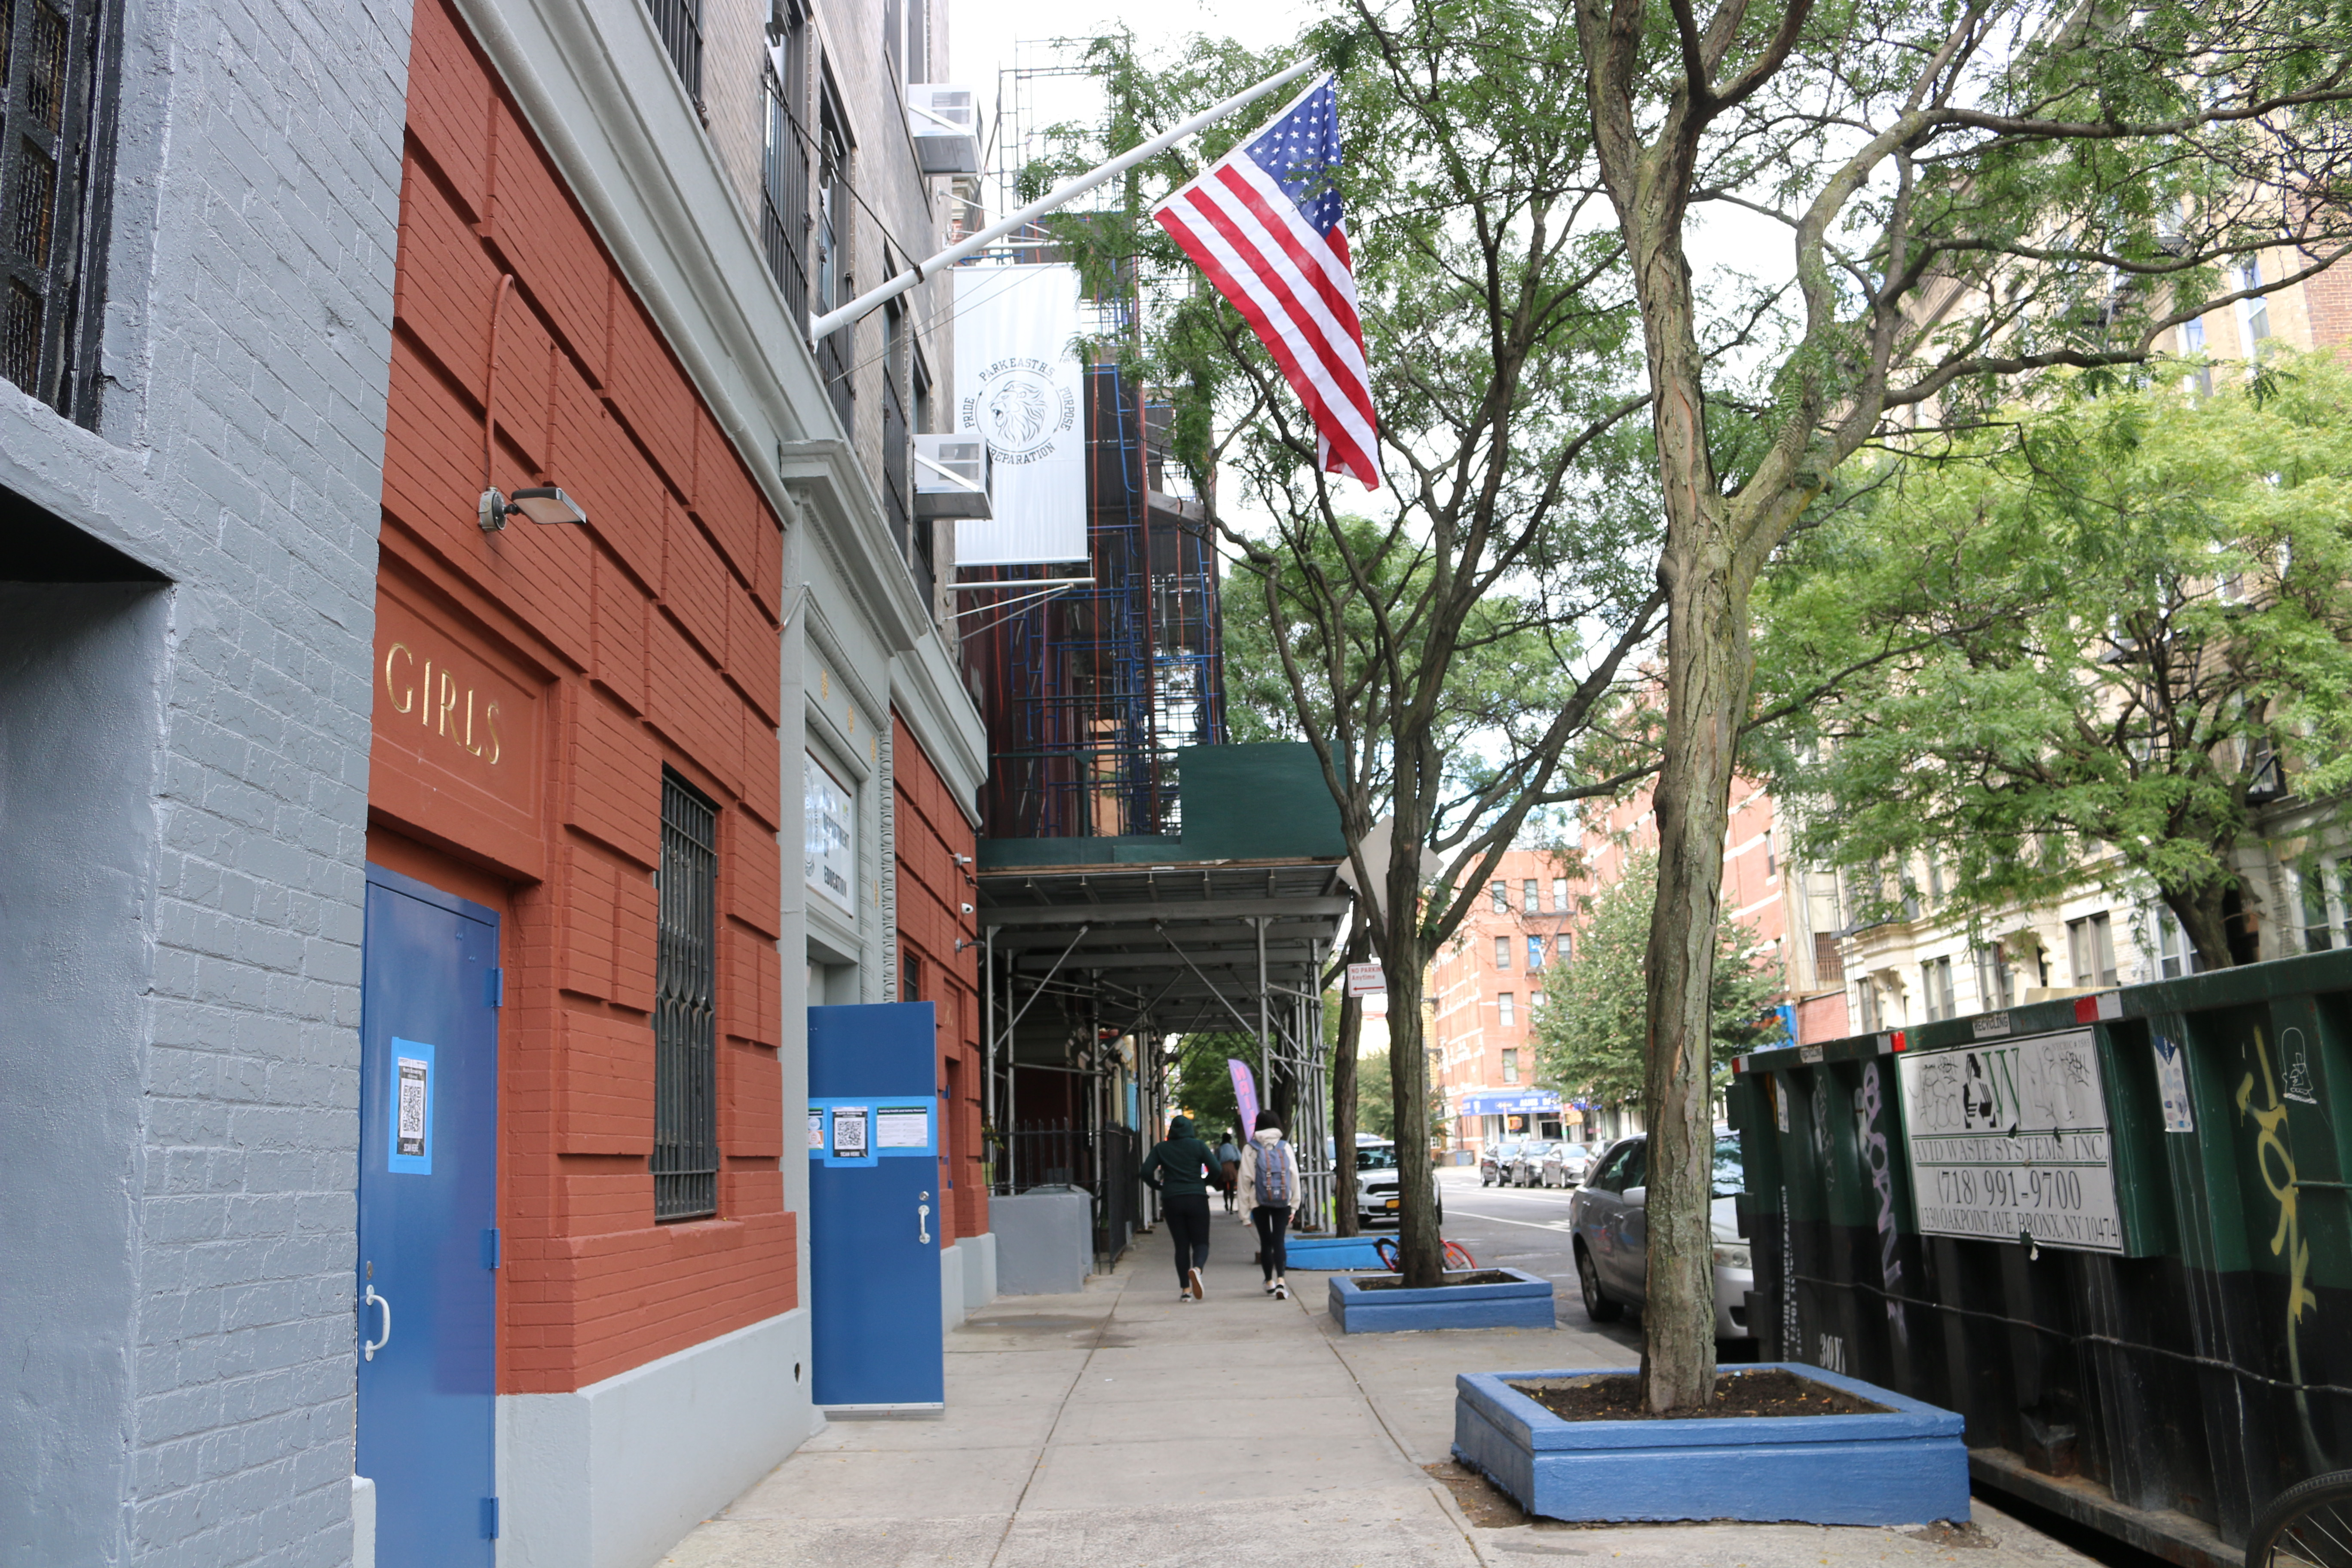 An American flag hangs above the entrance of a red brick building with blue doors.